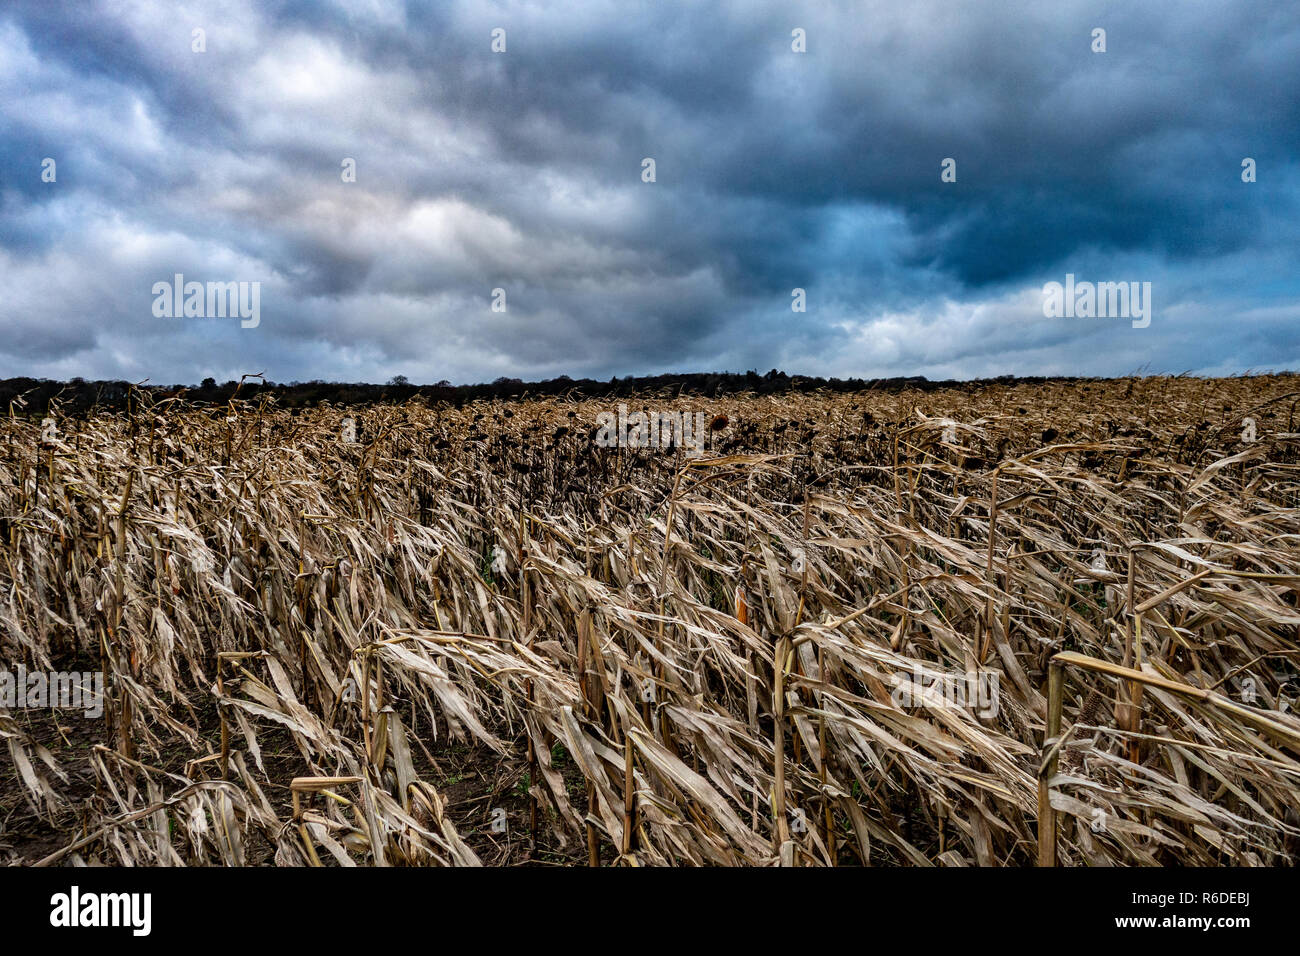 Storm clouds over a field of dead Sunflowers in the foreground - Stock Image